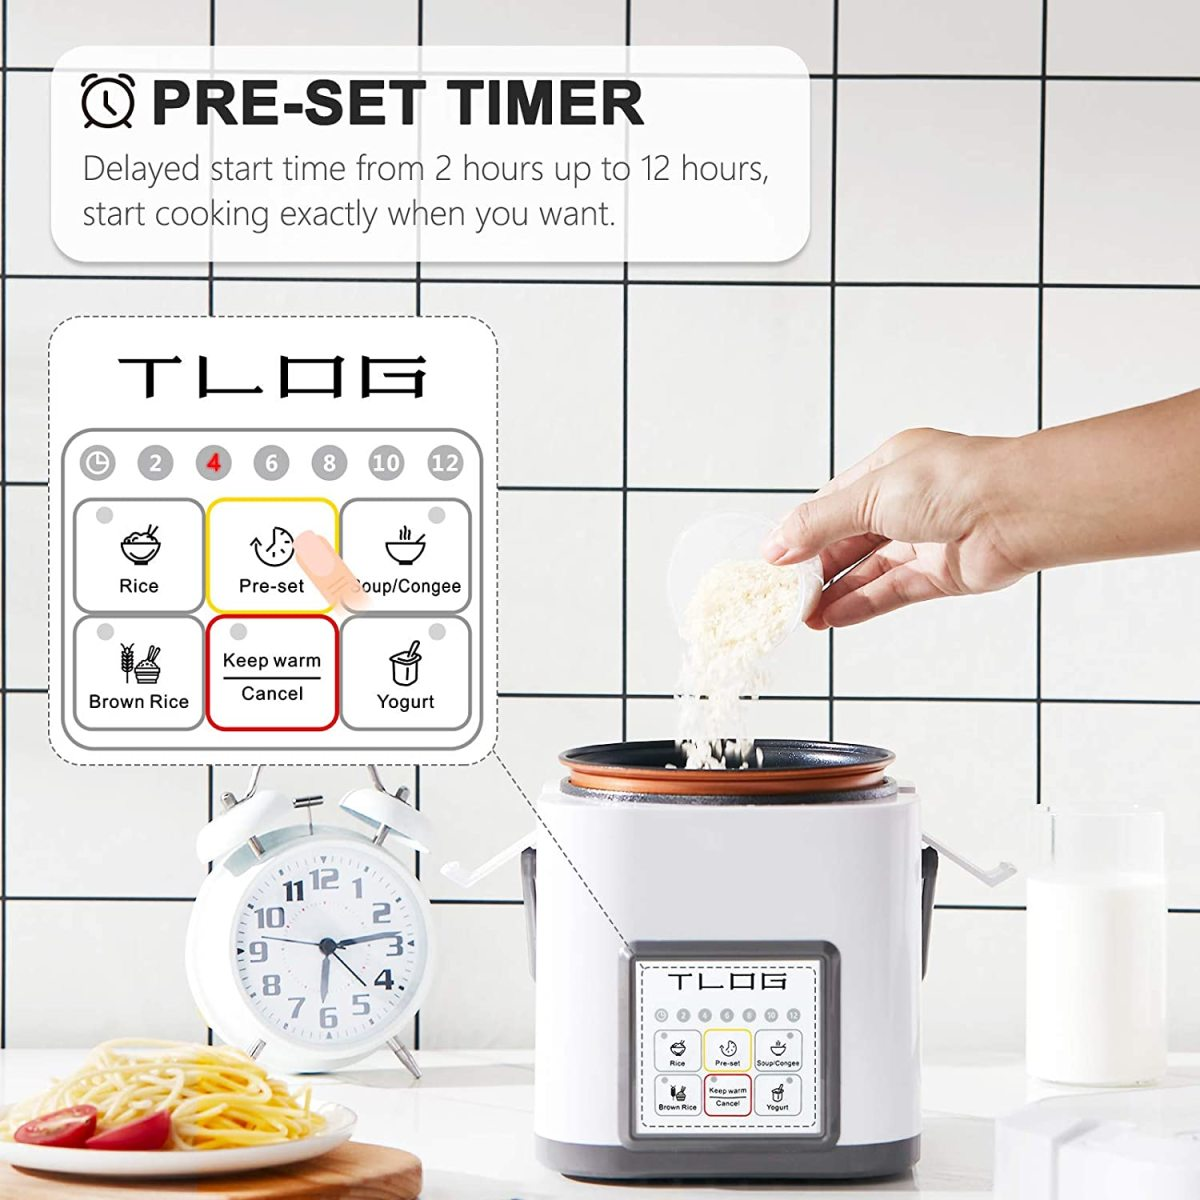 The TLOG Mini Rice Cooker has a preset feature. Cooking can be delayed between 2 to 12 hours in two-hour increments